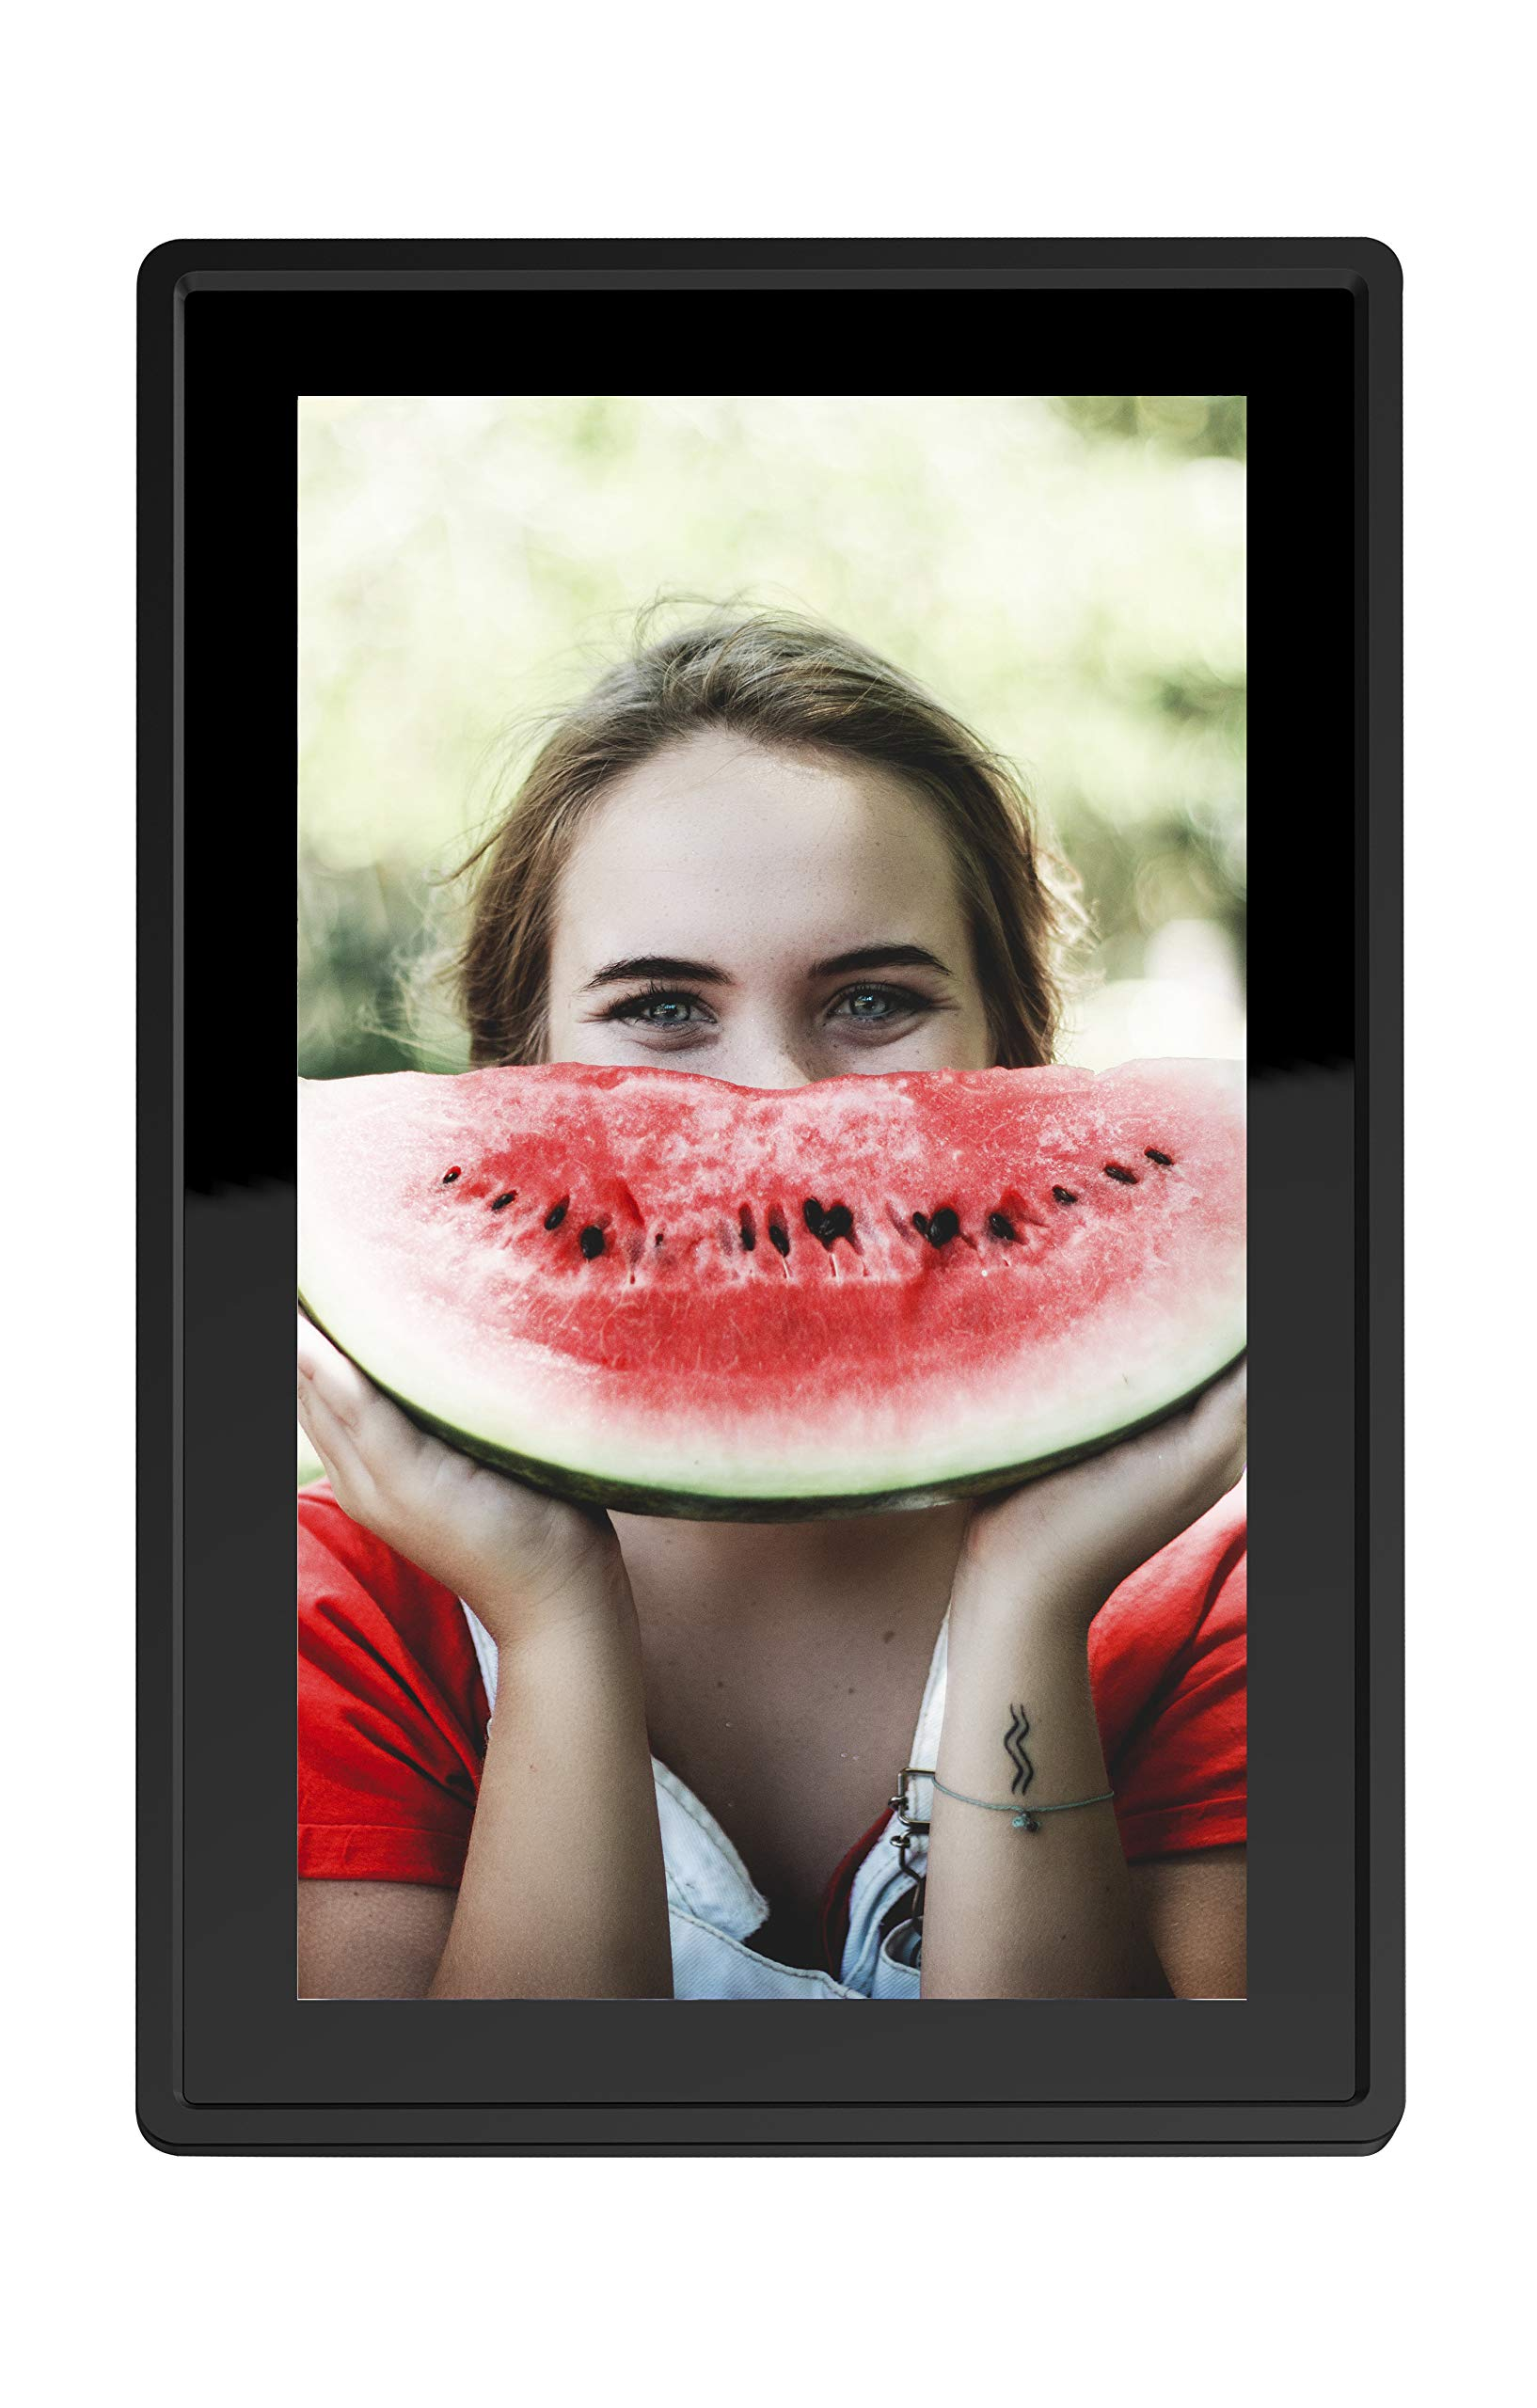 Feelcare 10 Inch 16GB Smart WiFi Digital Picture Frame, Send Photos from Anywhere in The World, Touch Screen, 800x1280 IPS LCD Panel, Wall-Mountable, Portrait and Landscape(Black) by Feelcare (Image #3)